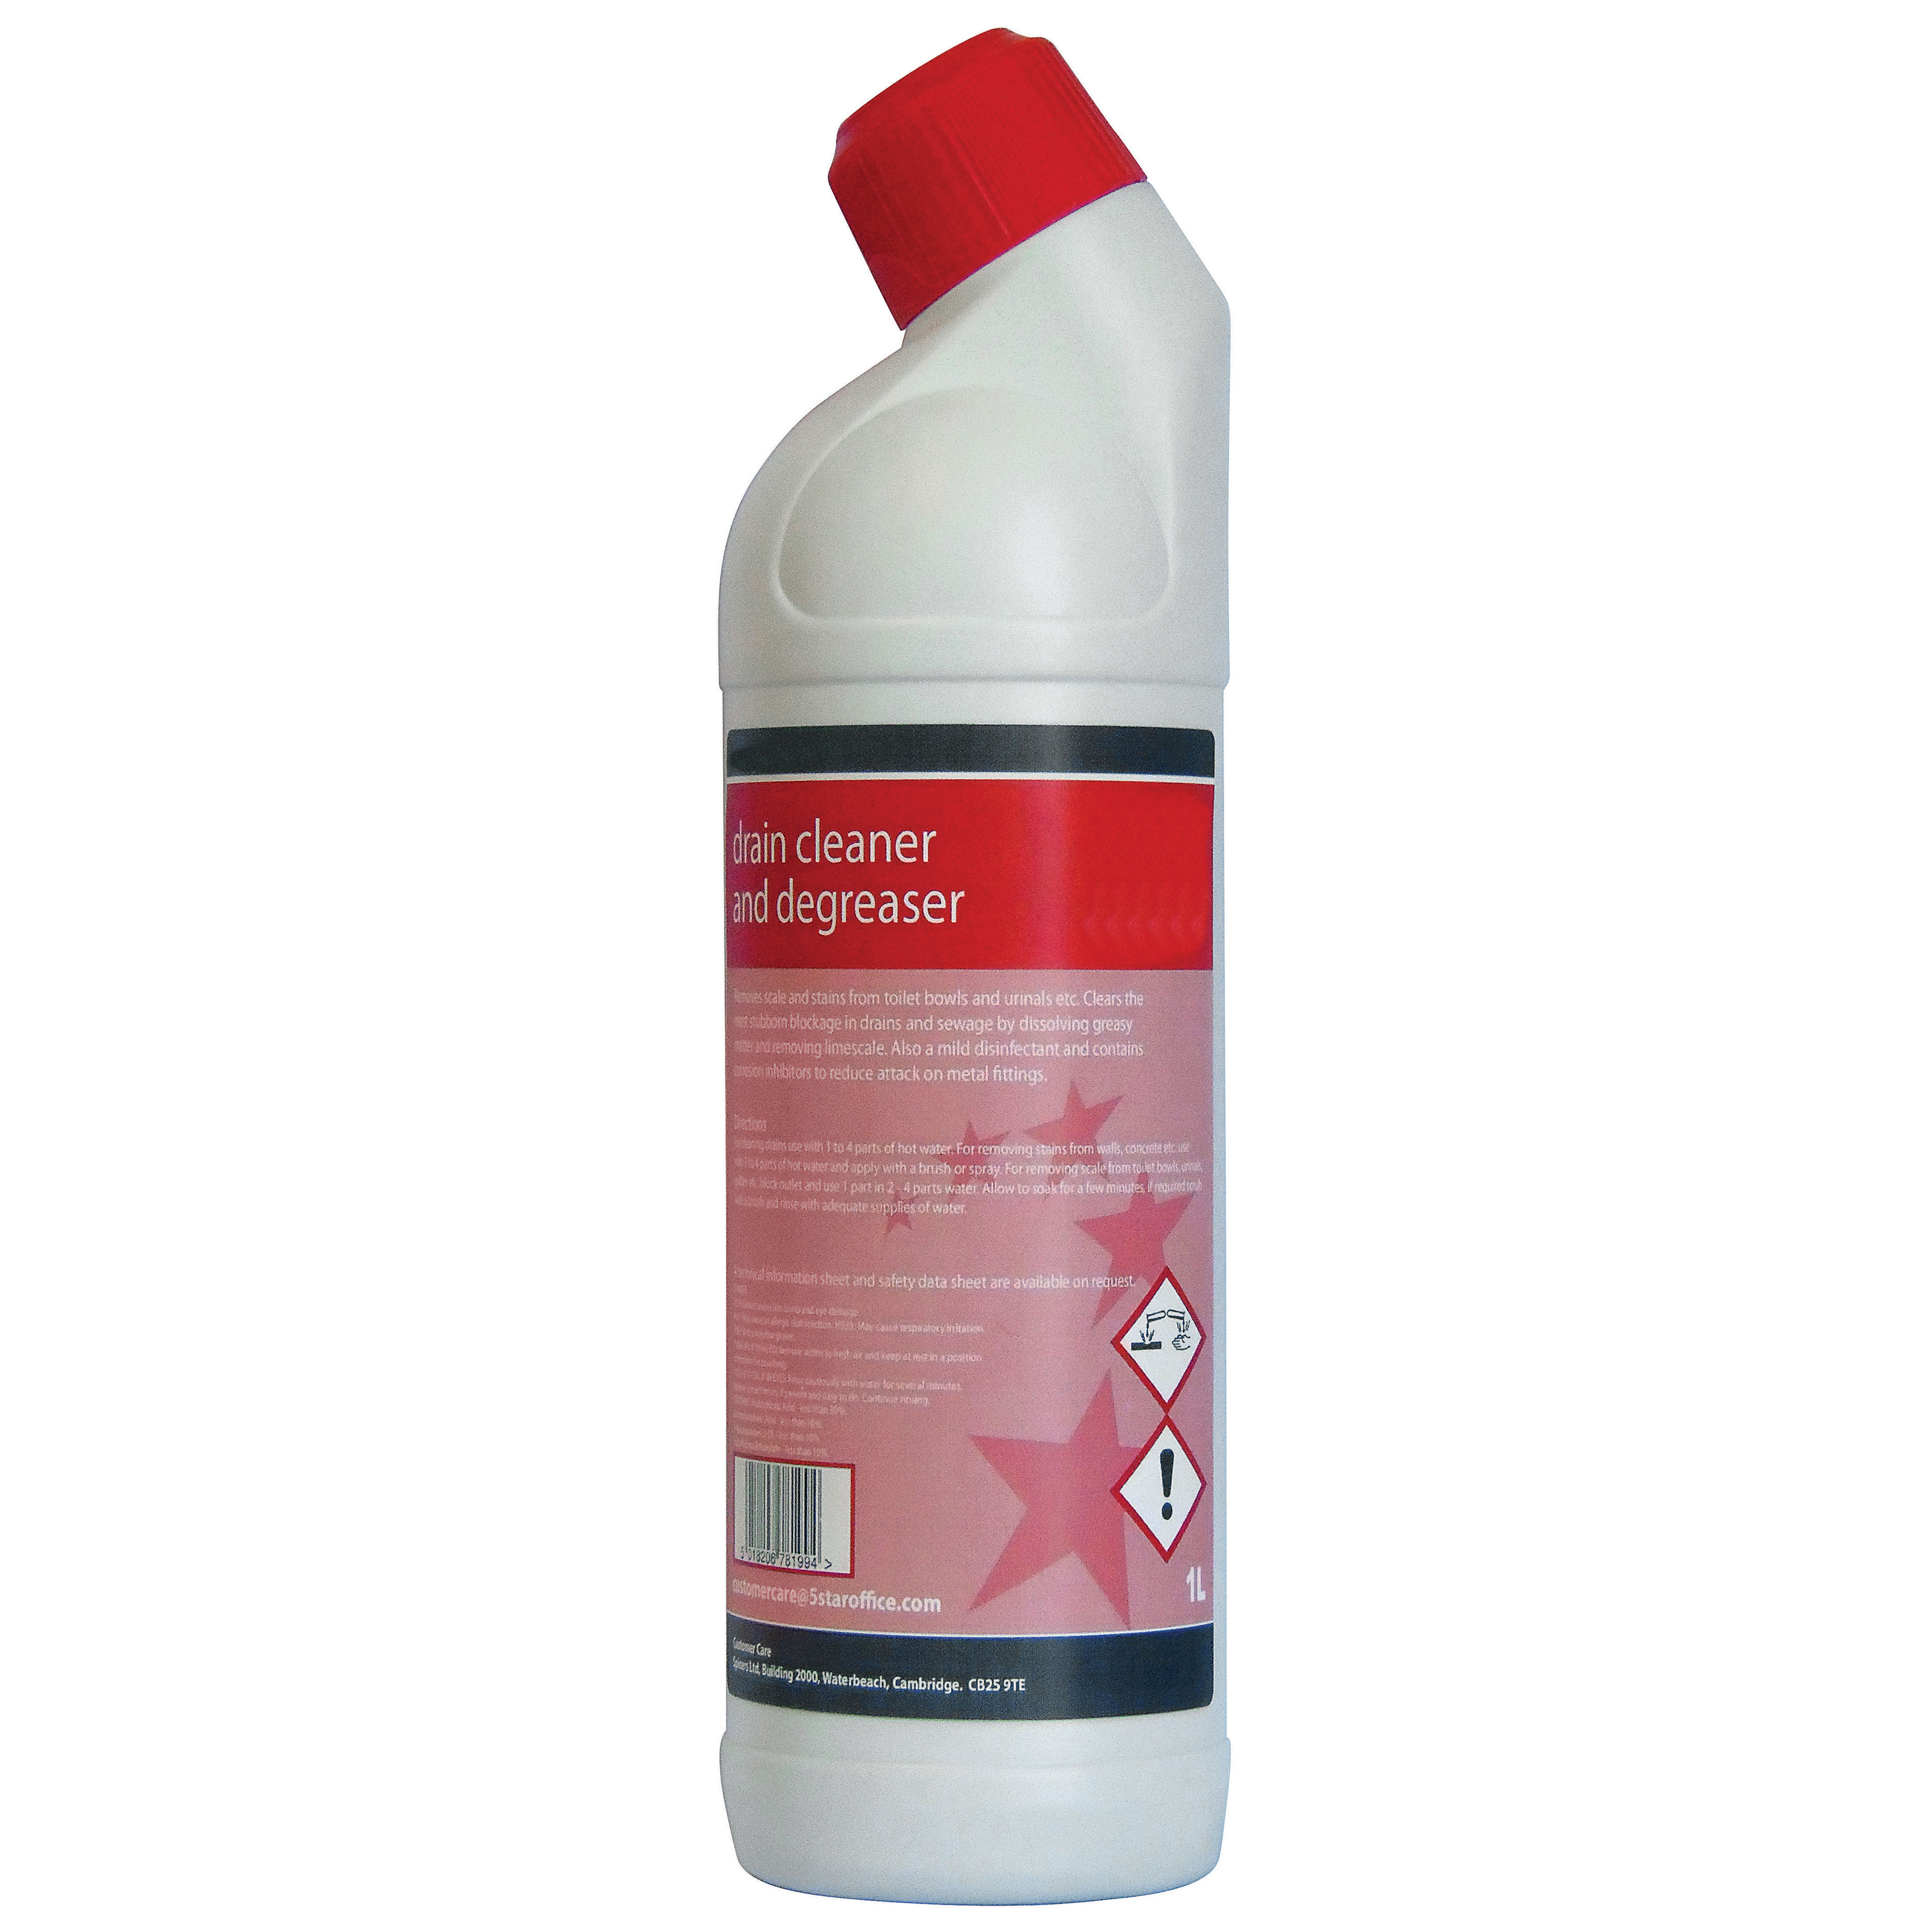 5 Star Facilities Drain Cleaner and Degreaser 1 Litre